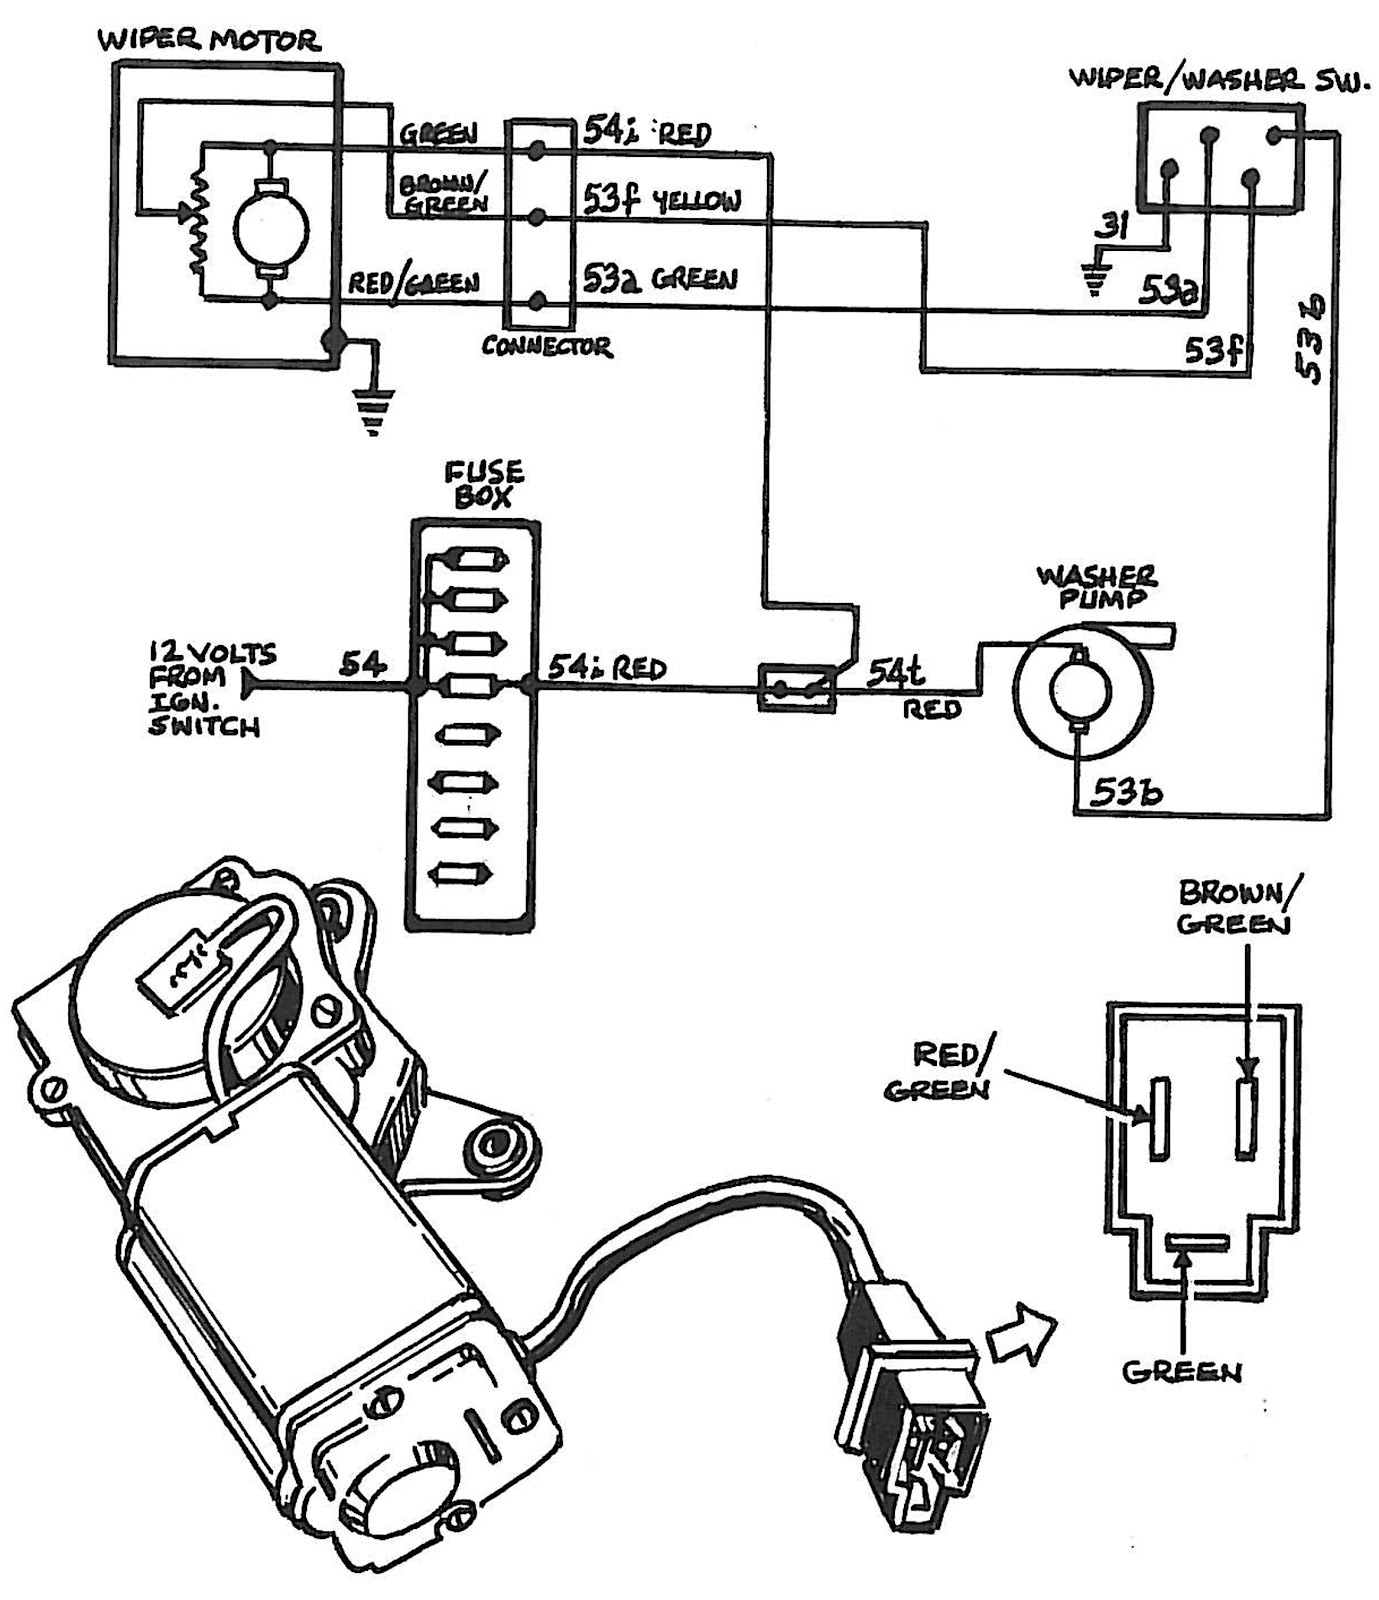 Universal Motor Wiring Diagram additionally Kubota Rtv 900 Ignition Switch Wiring Diagram likewise  on dc system wiring diagrams